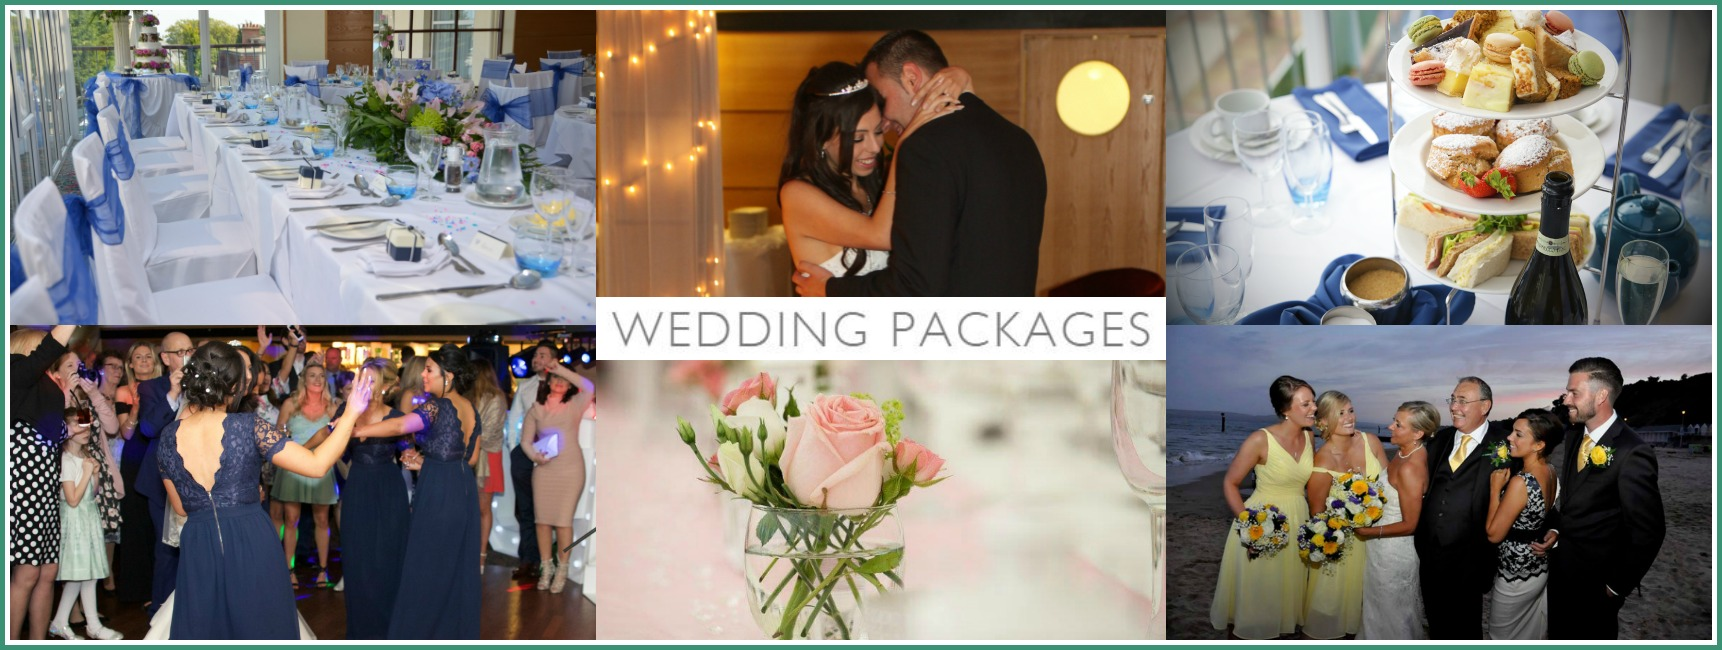 weddingpackages2